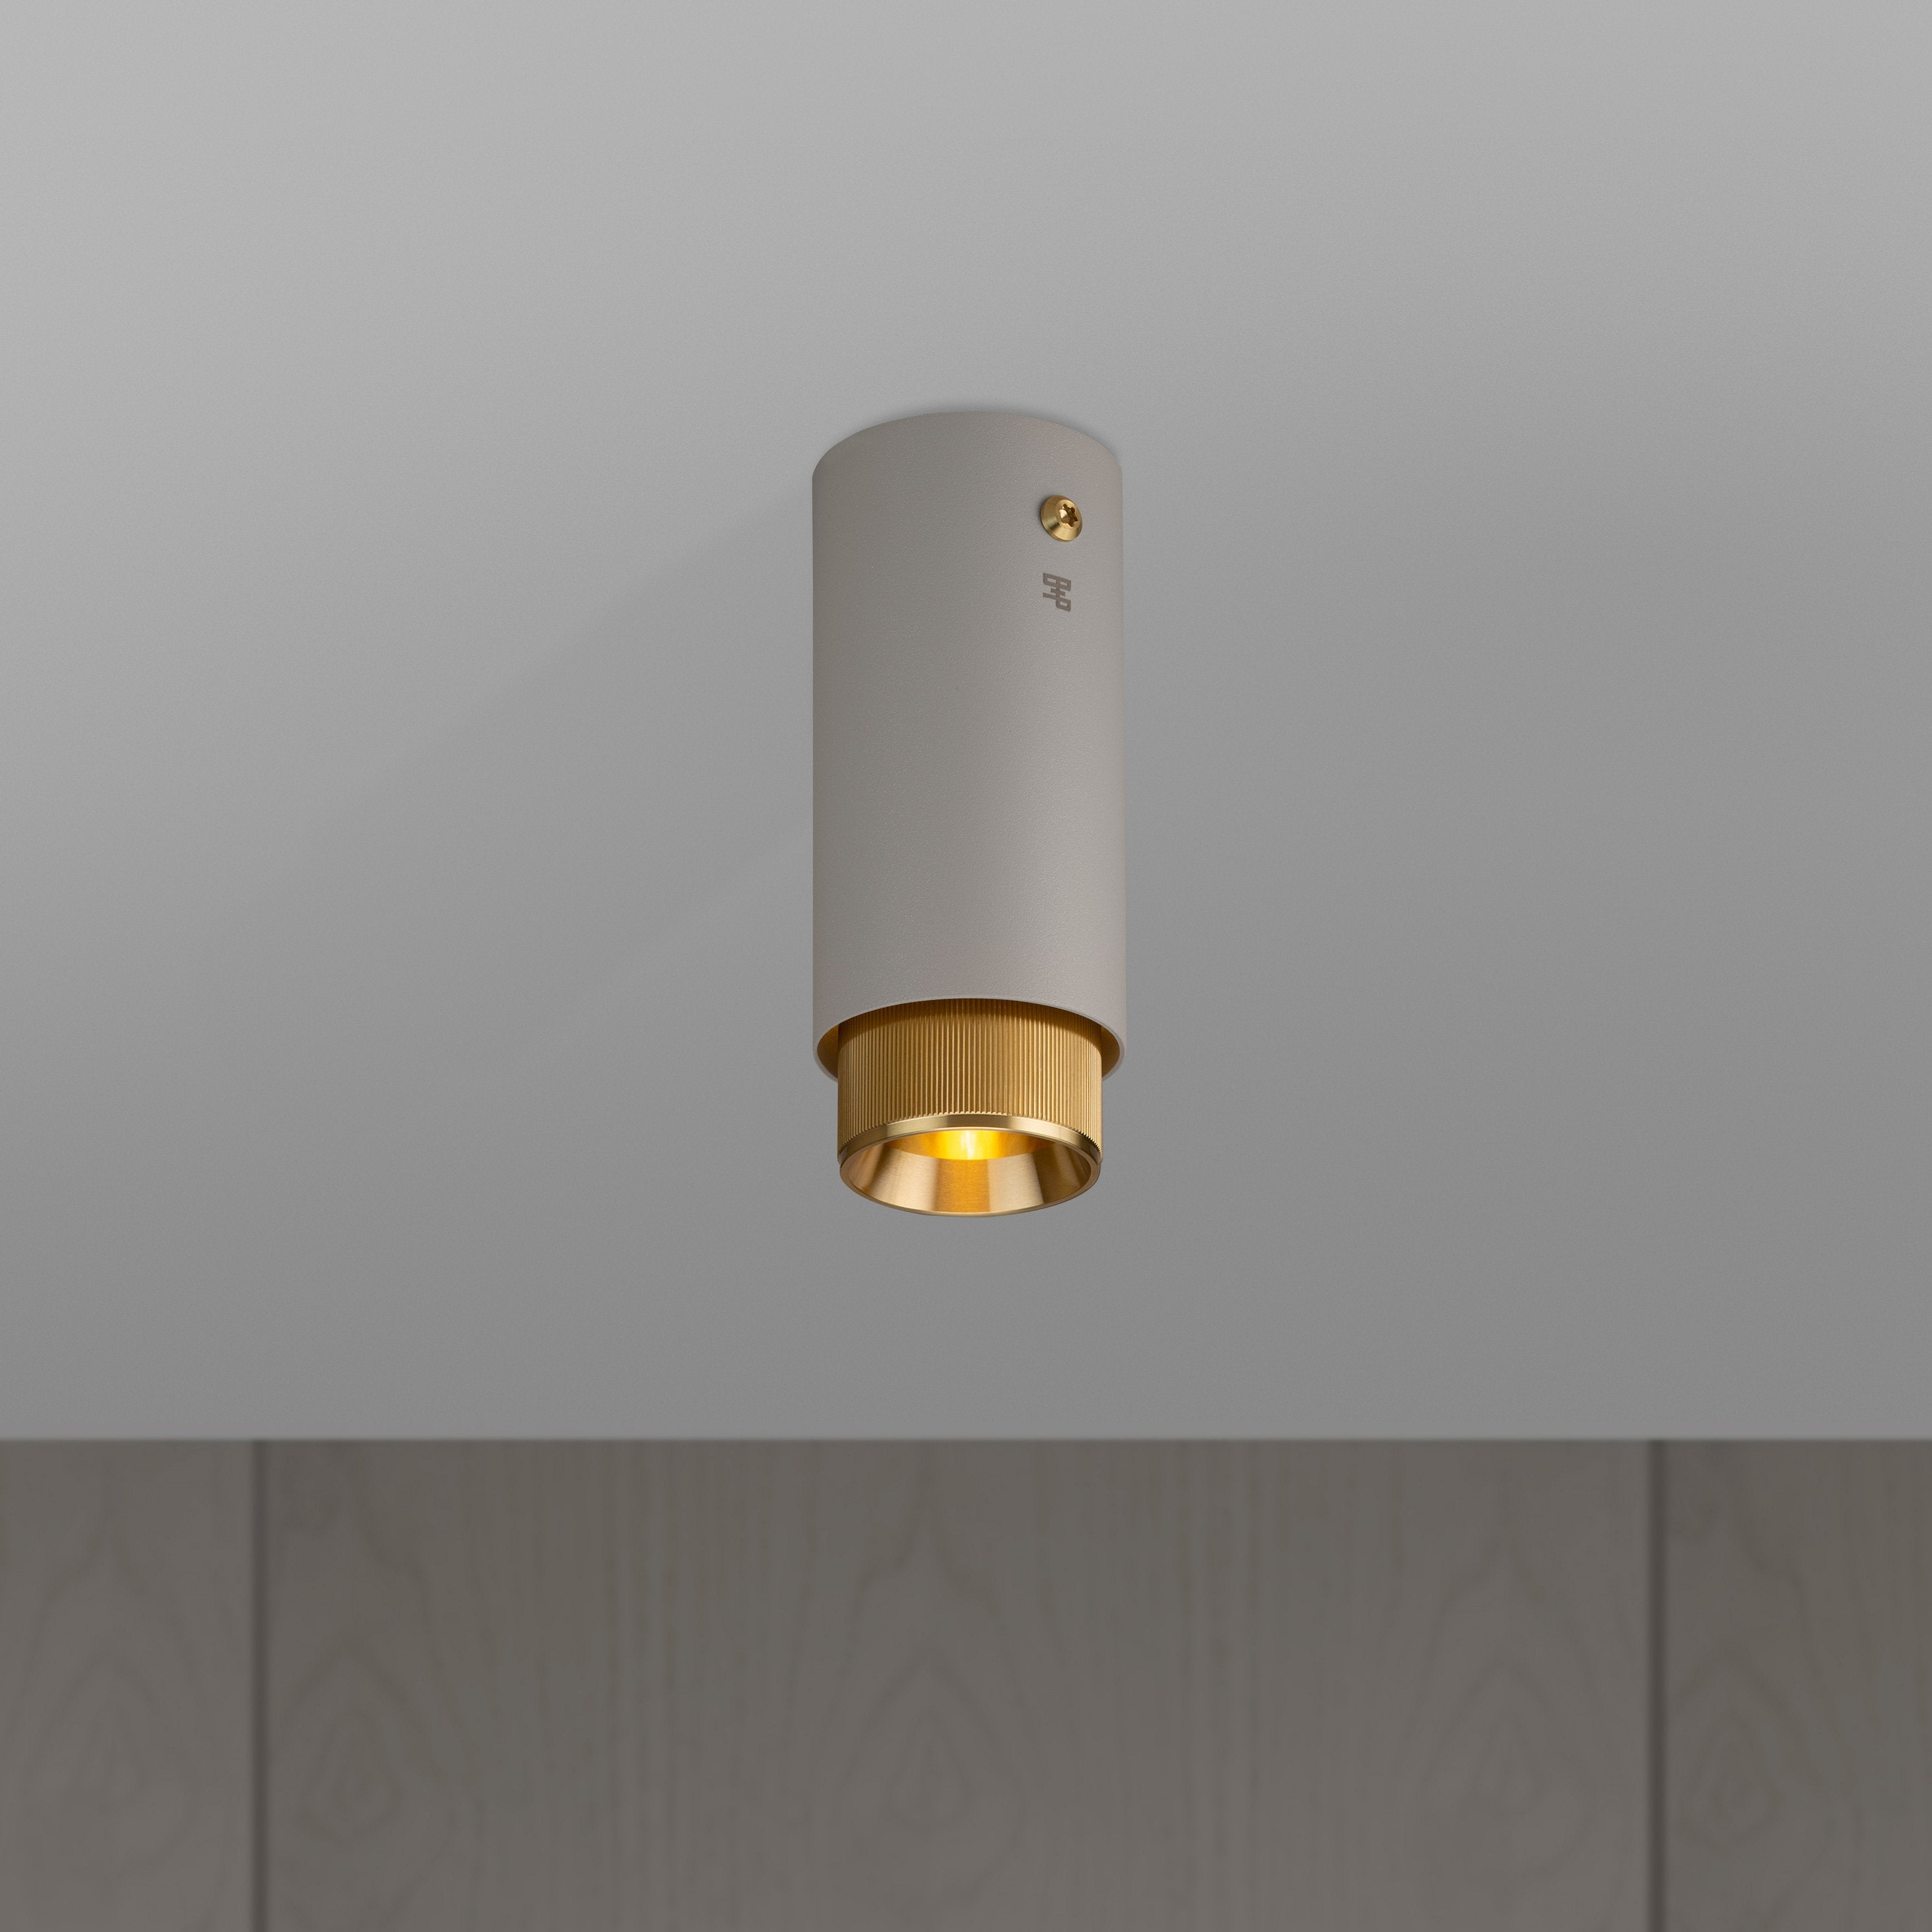 Buster and Punch EXHAUST SURFACE / STONE / BRASS - No.42 Interiors